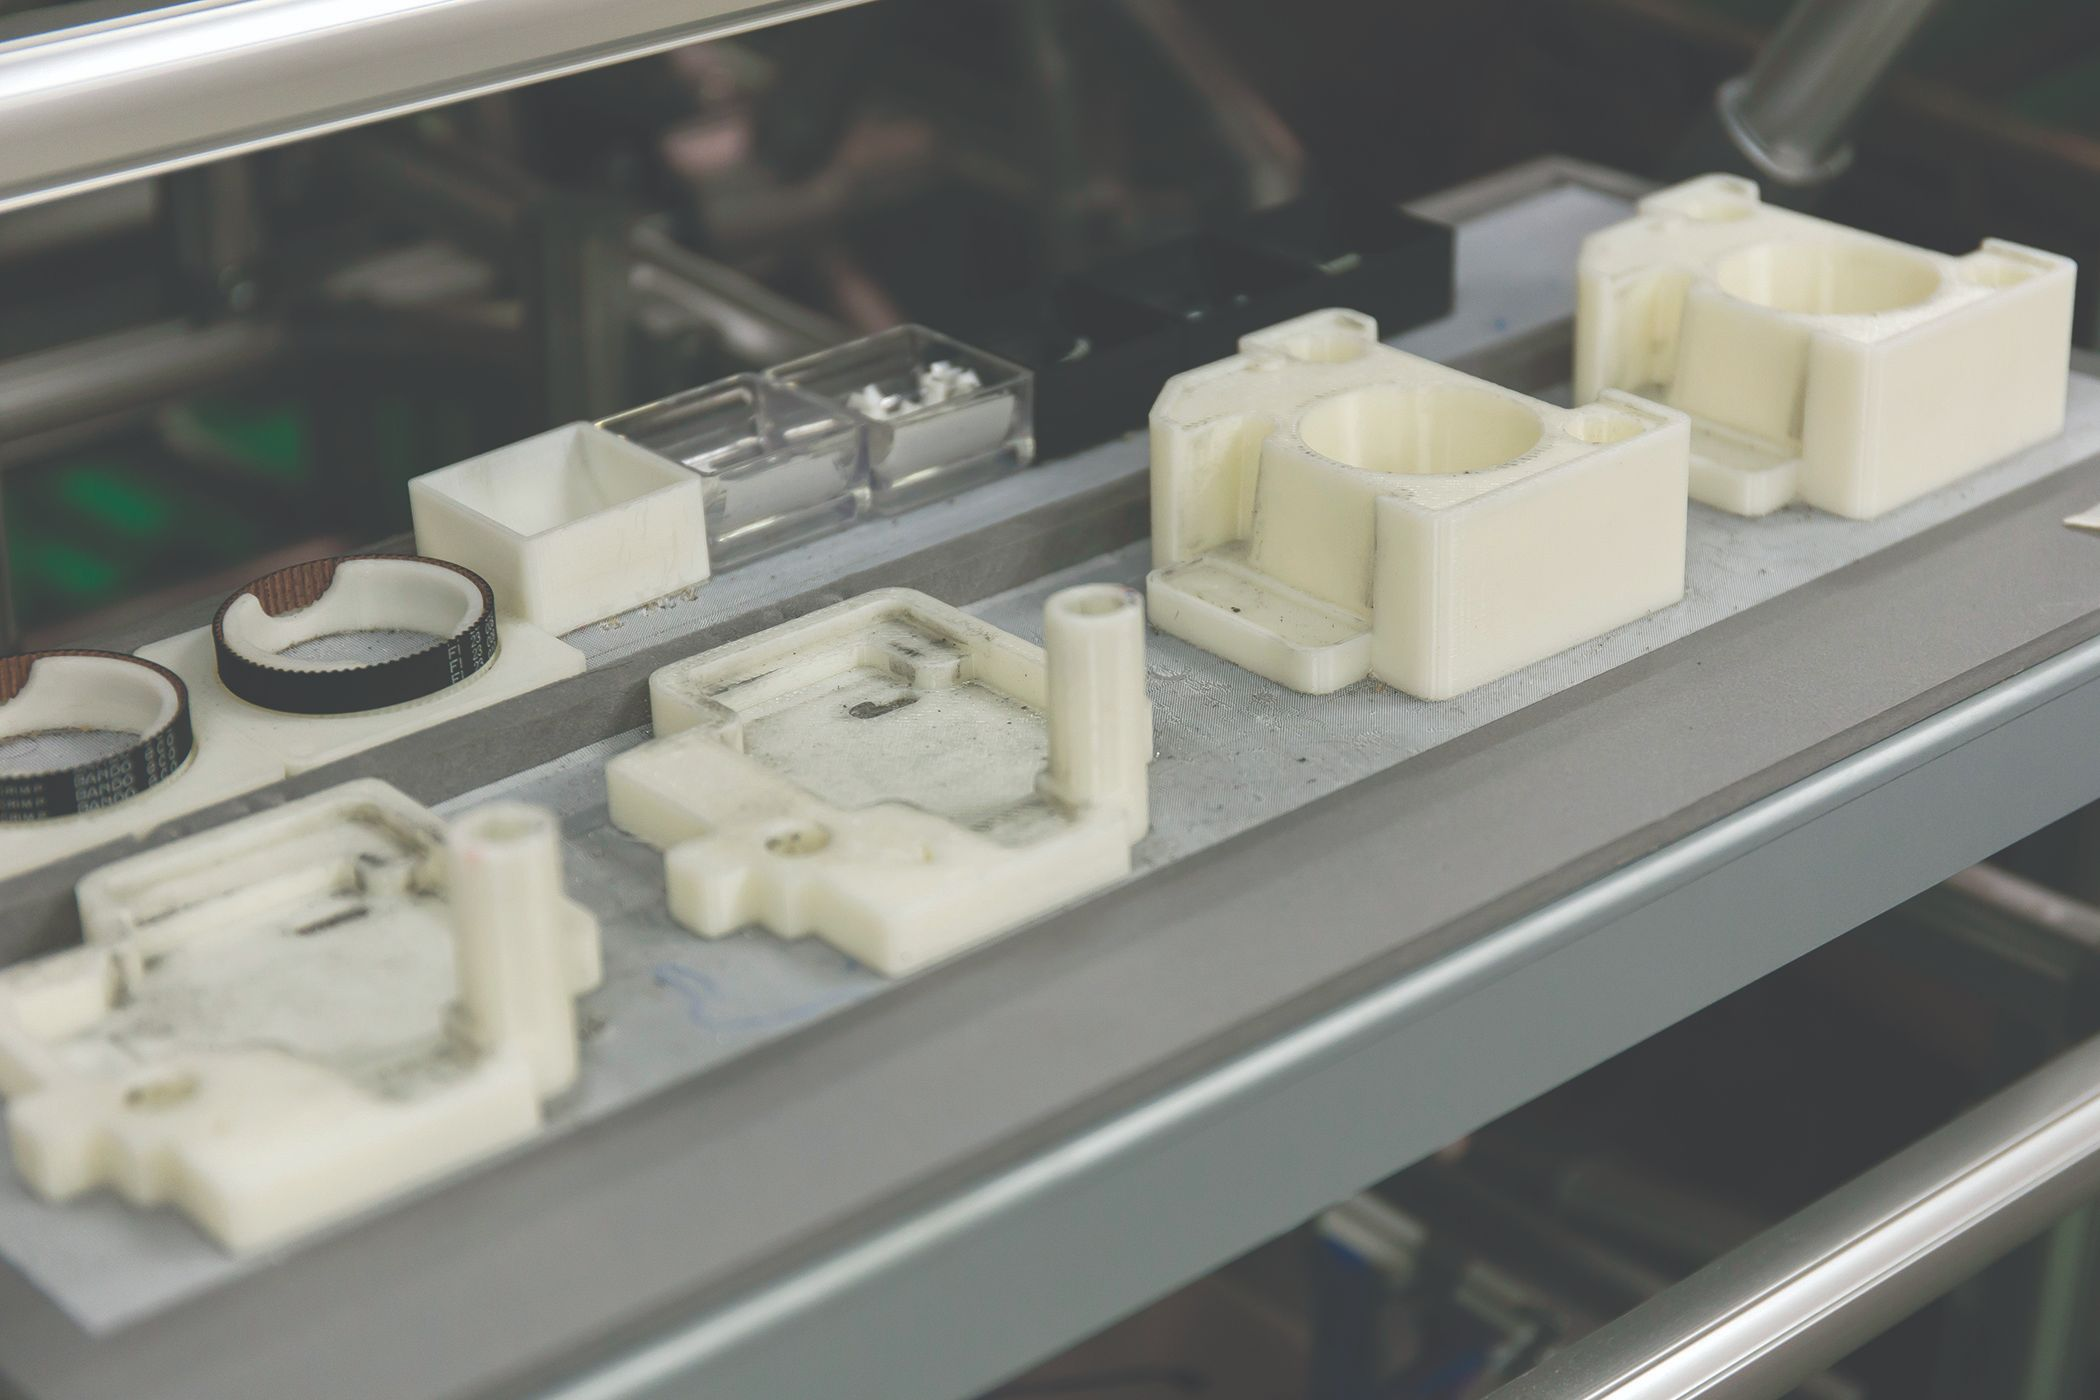 Jigs and fixtures that once took two weeks to produce can now be printed in a few hours.